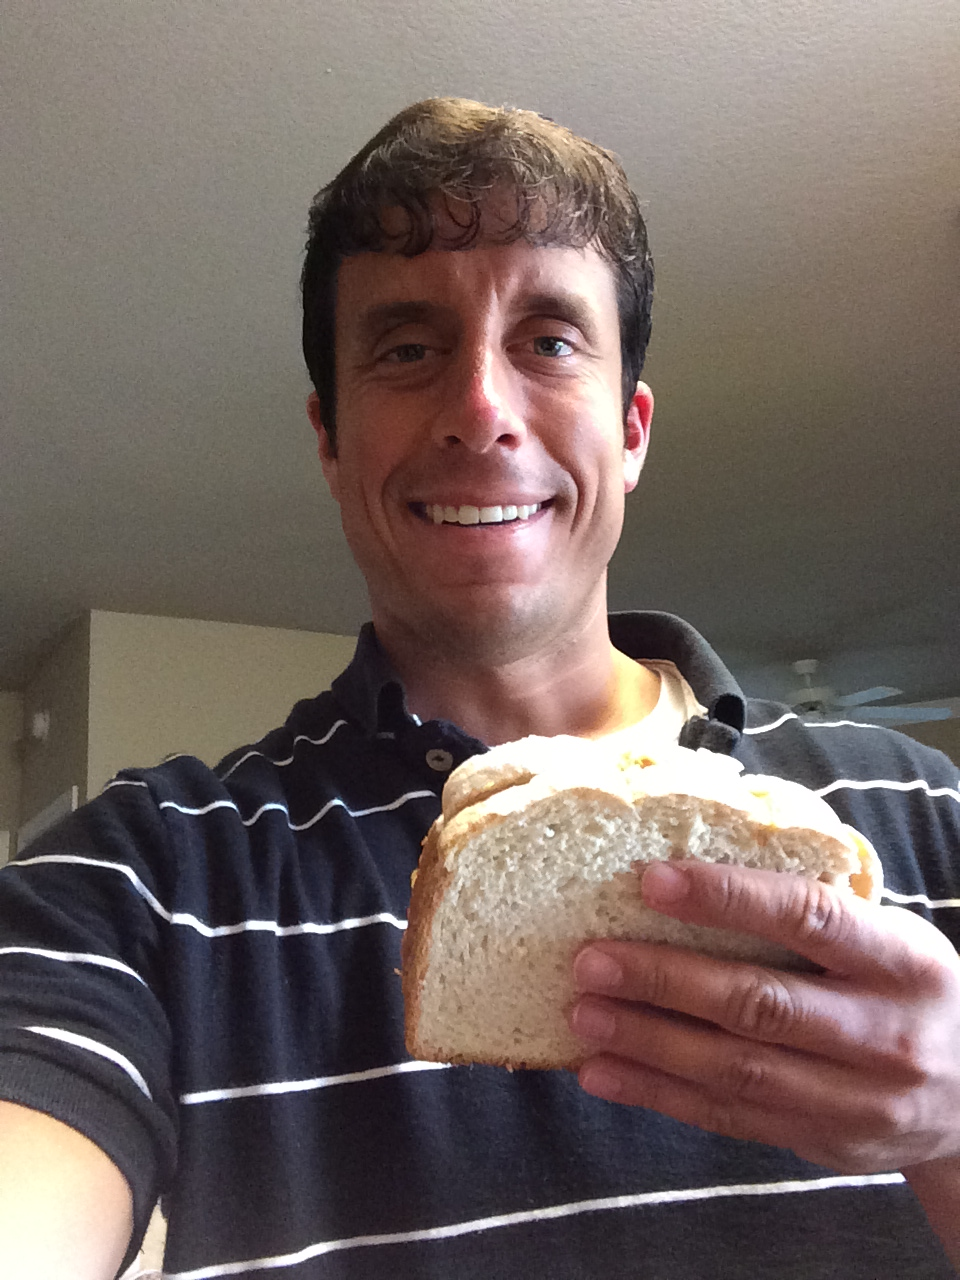 I eat half of a peanut butter sandwich for breakfast and a full peanut butter sandwich for lunch every single day.